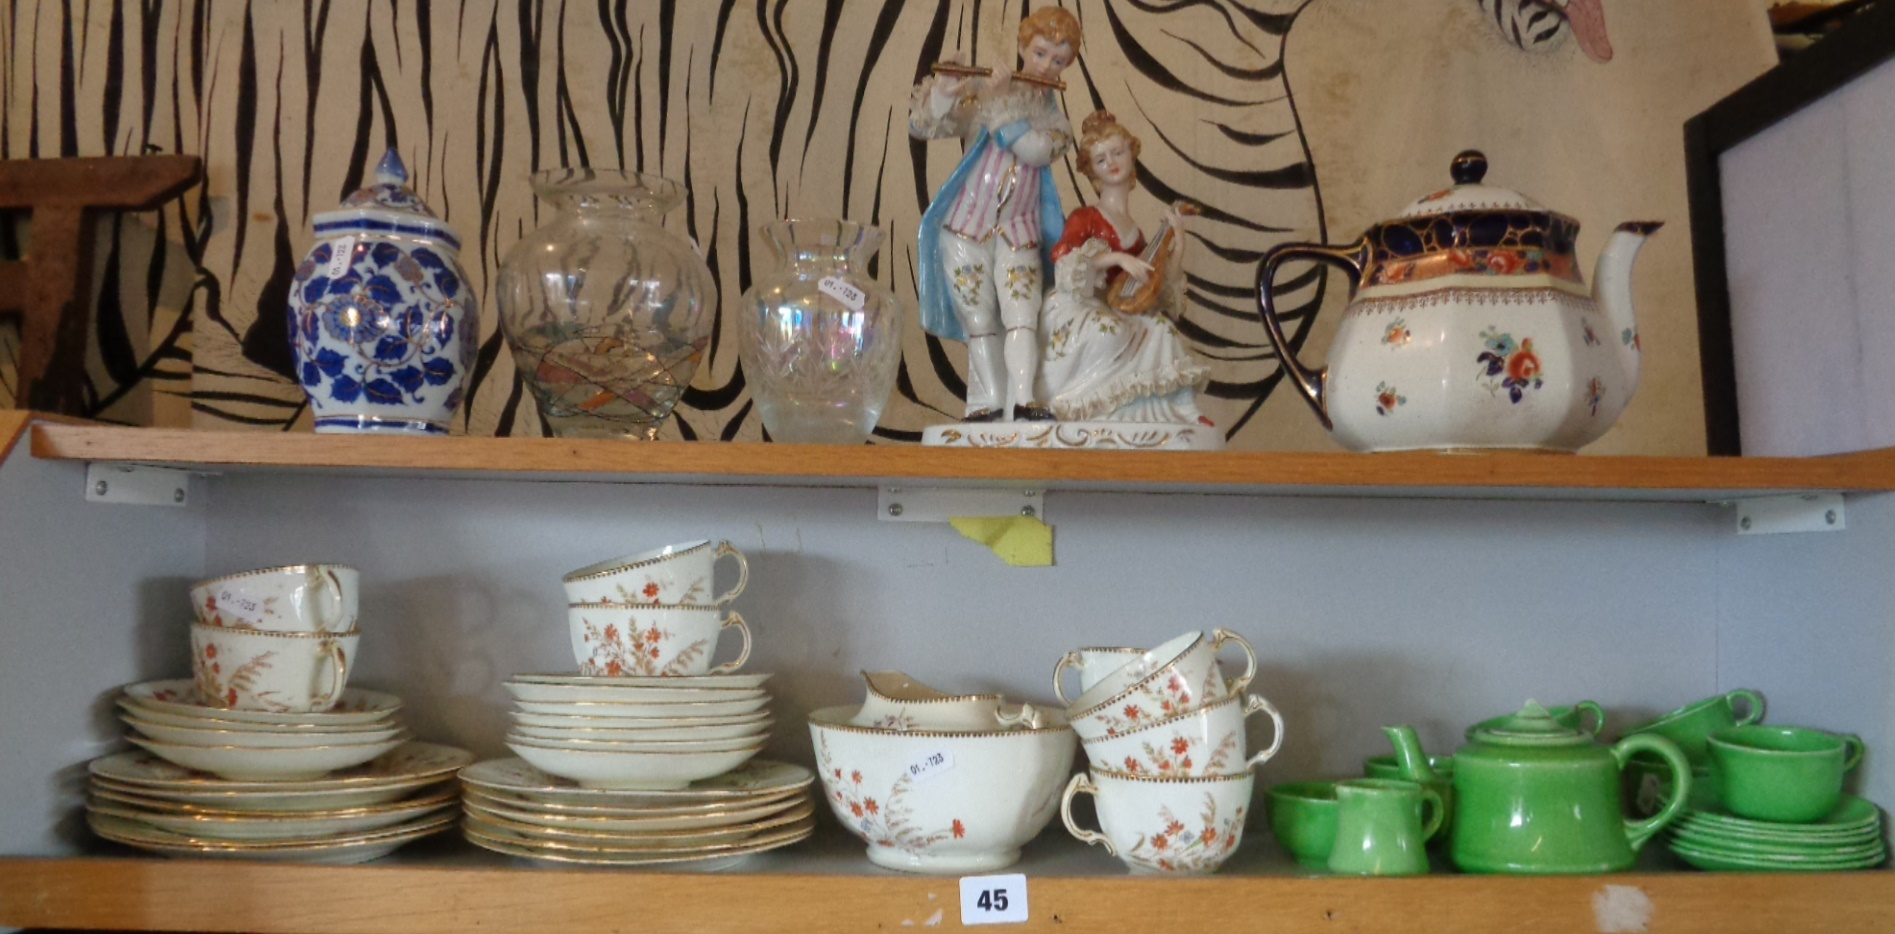 Lot 45 - Two shelves of china and glassware, inc. child's tea set